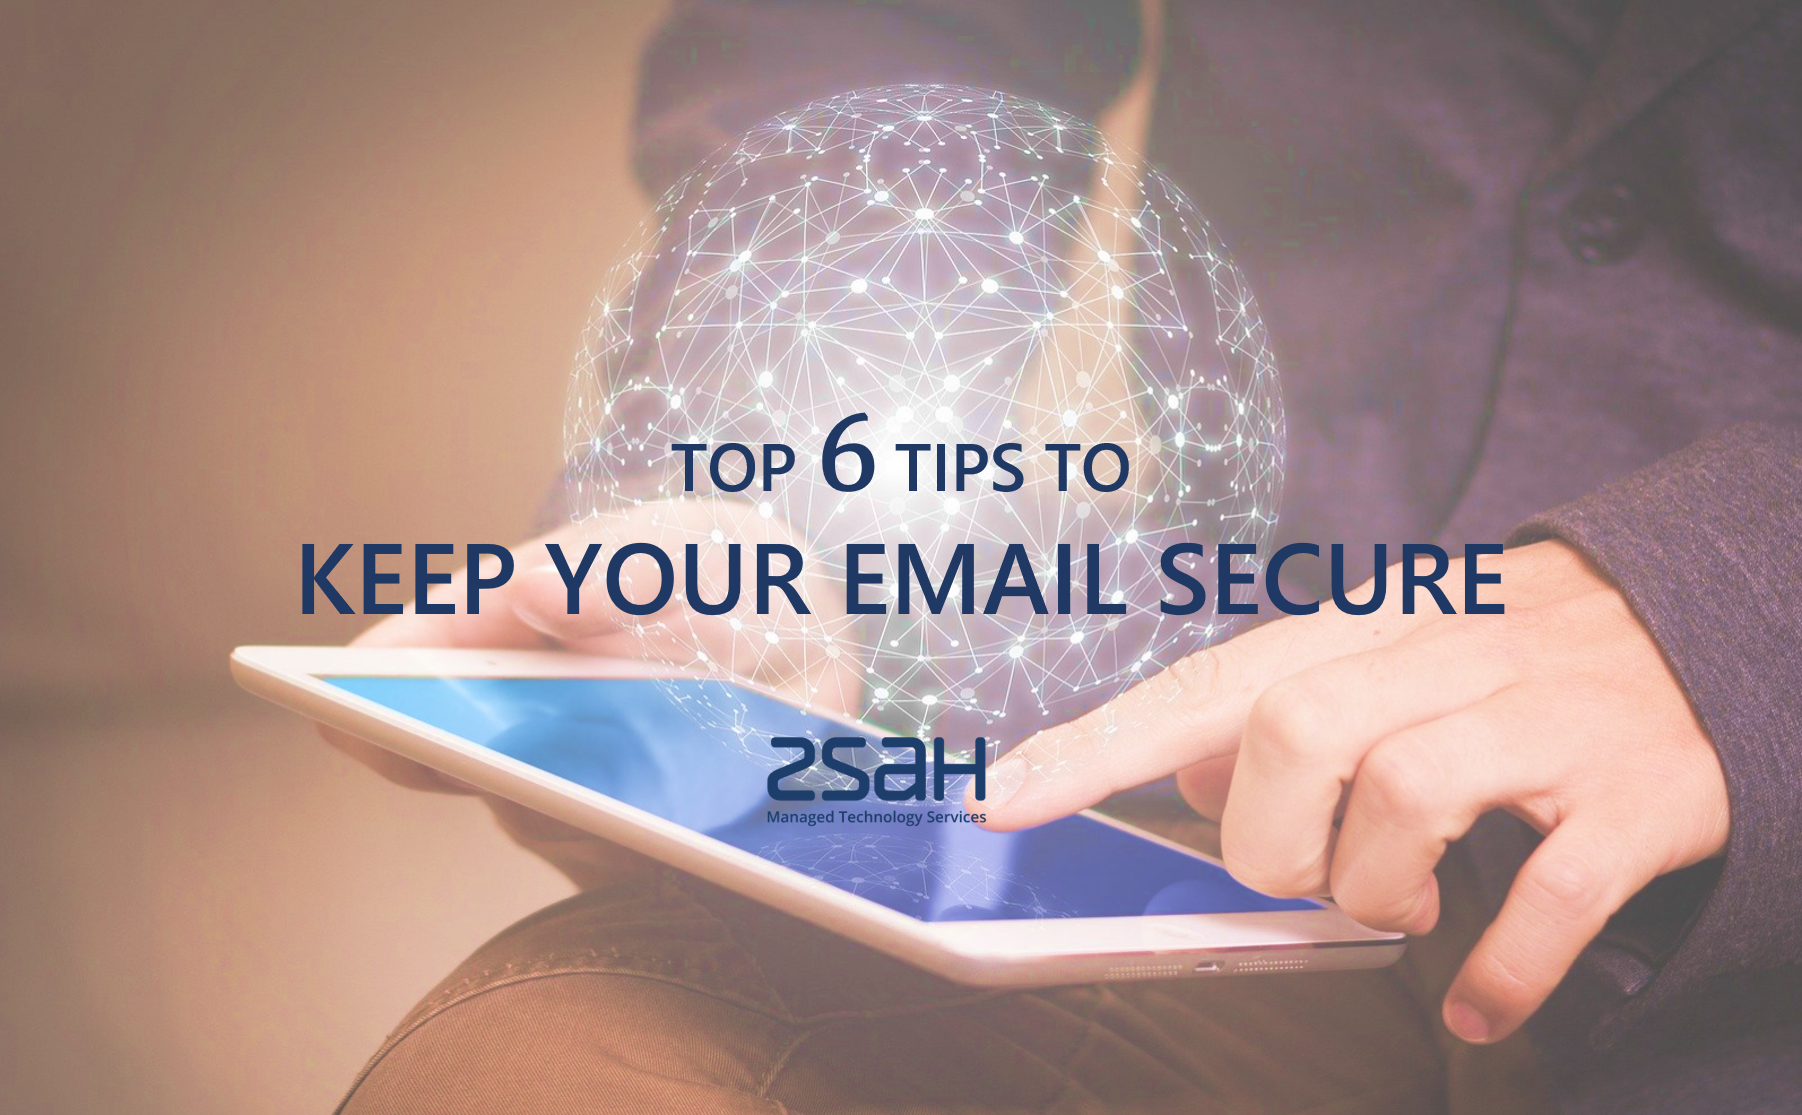 top tips email secure